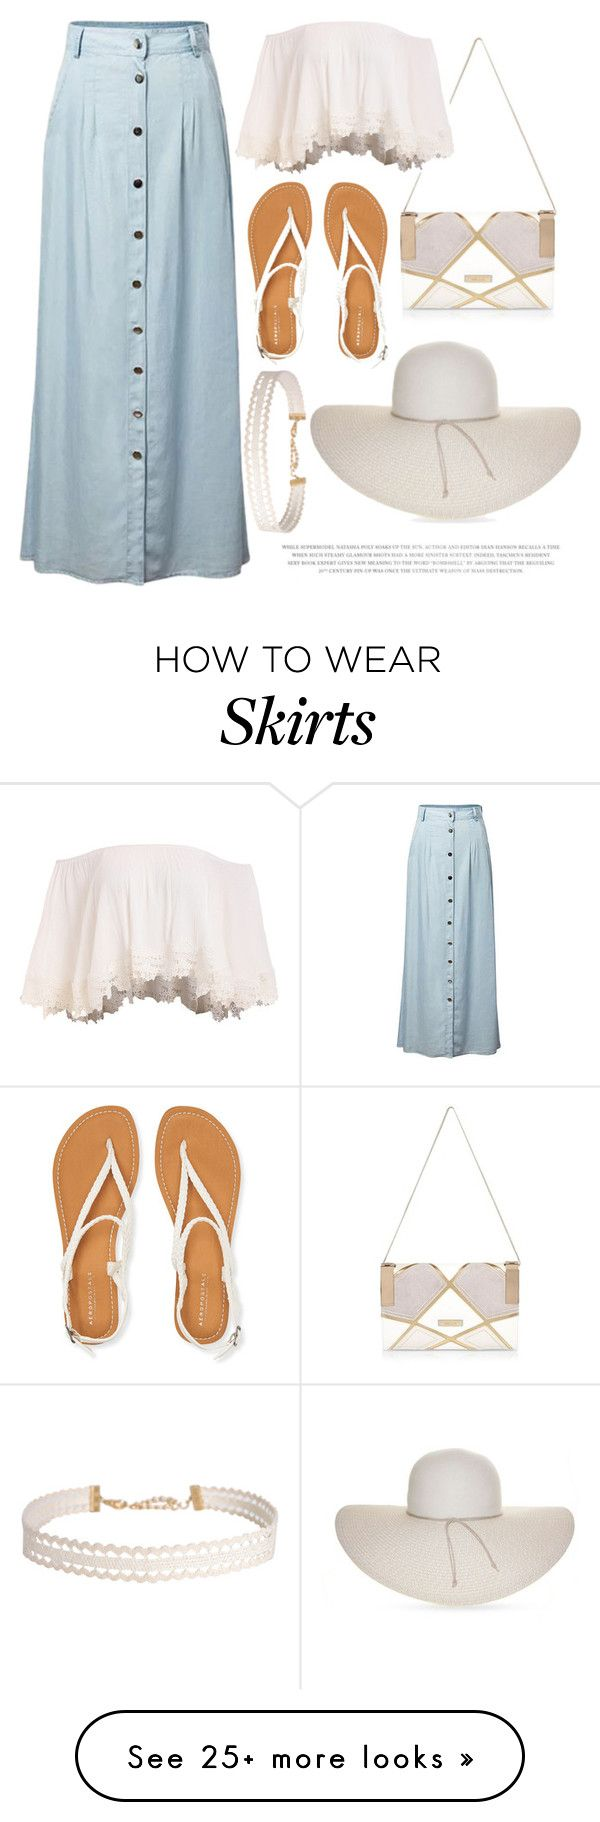 """""""Oh, denim skirt..."""" by lauren-intan on Polyvore featuring Chicnova Fashion, River Island, Aéropostale, Nine West and Humble Chic"""